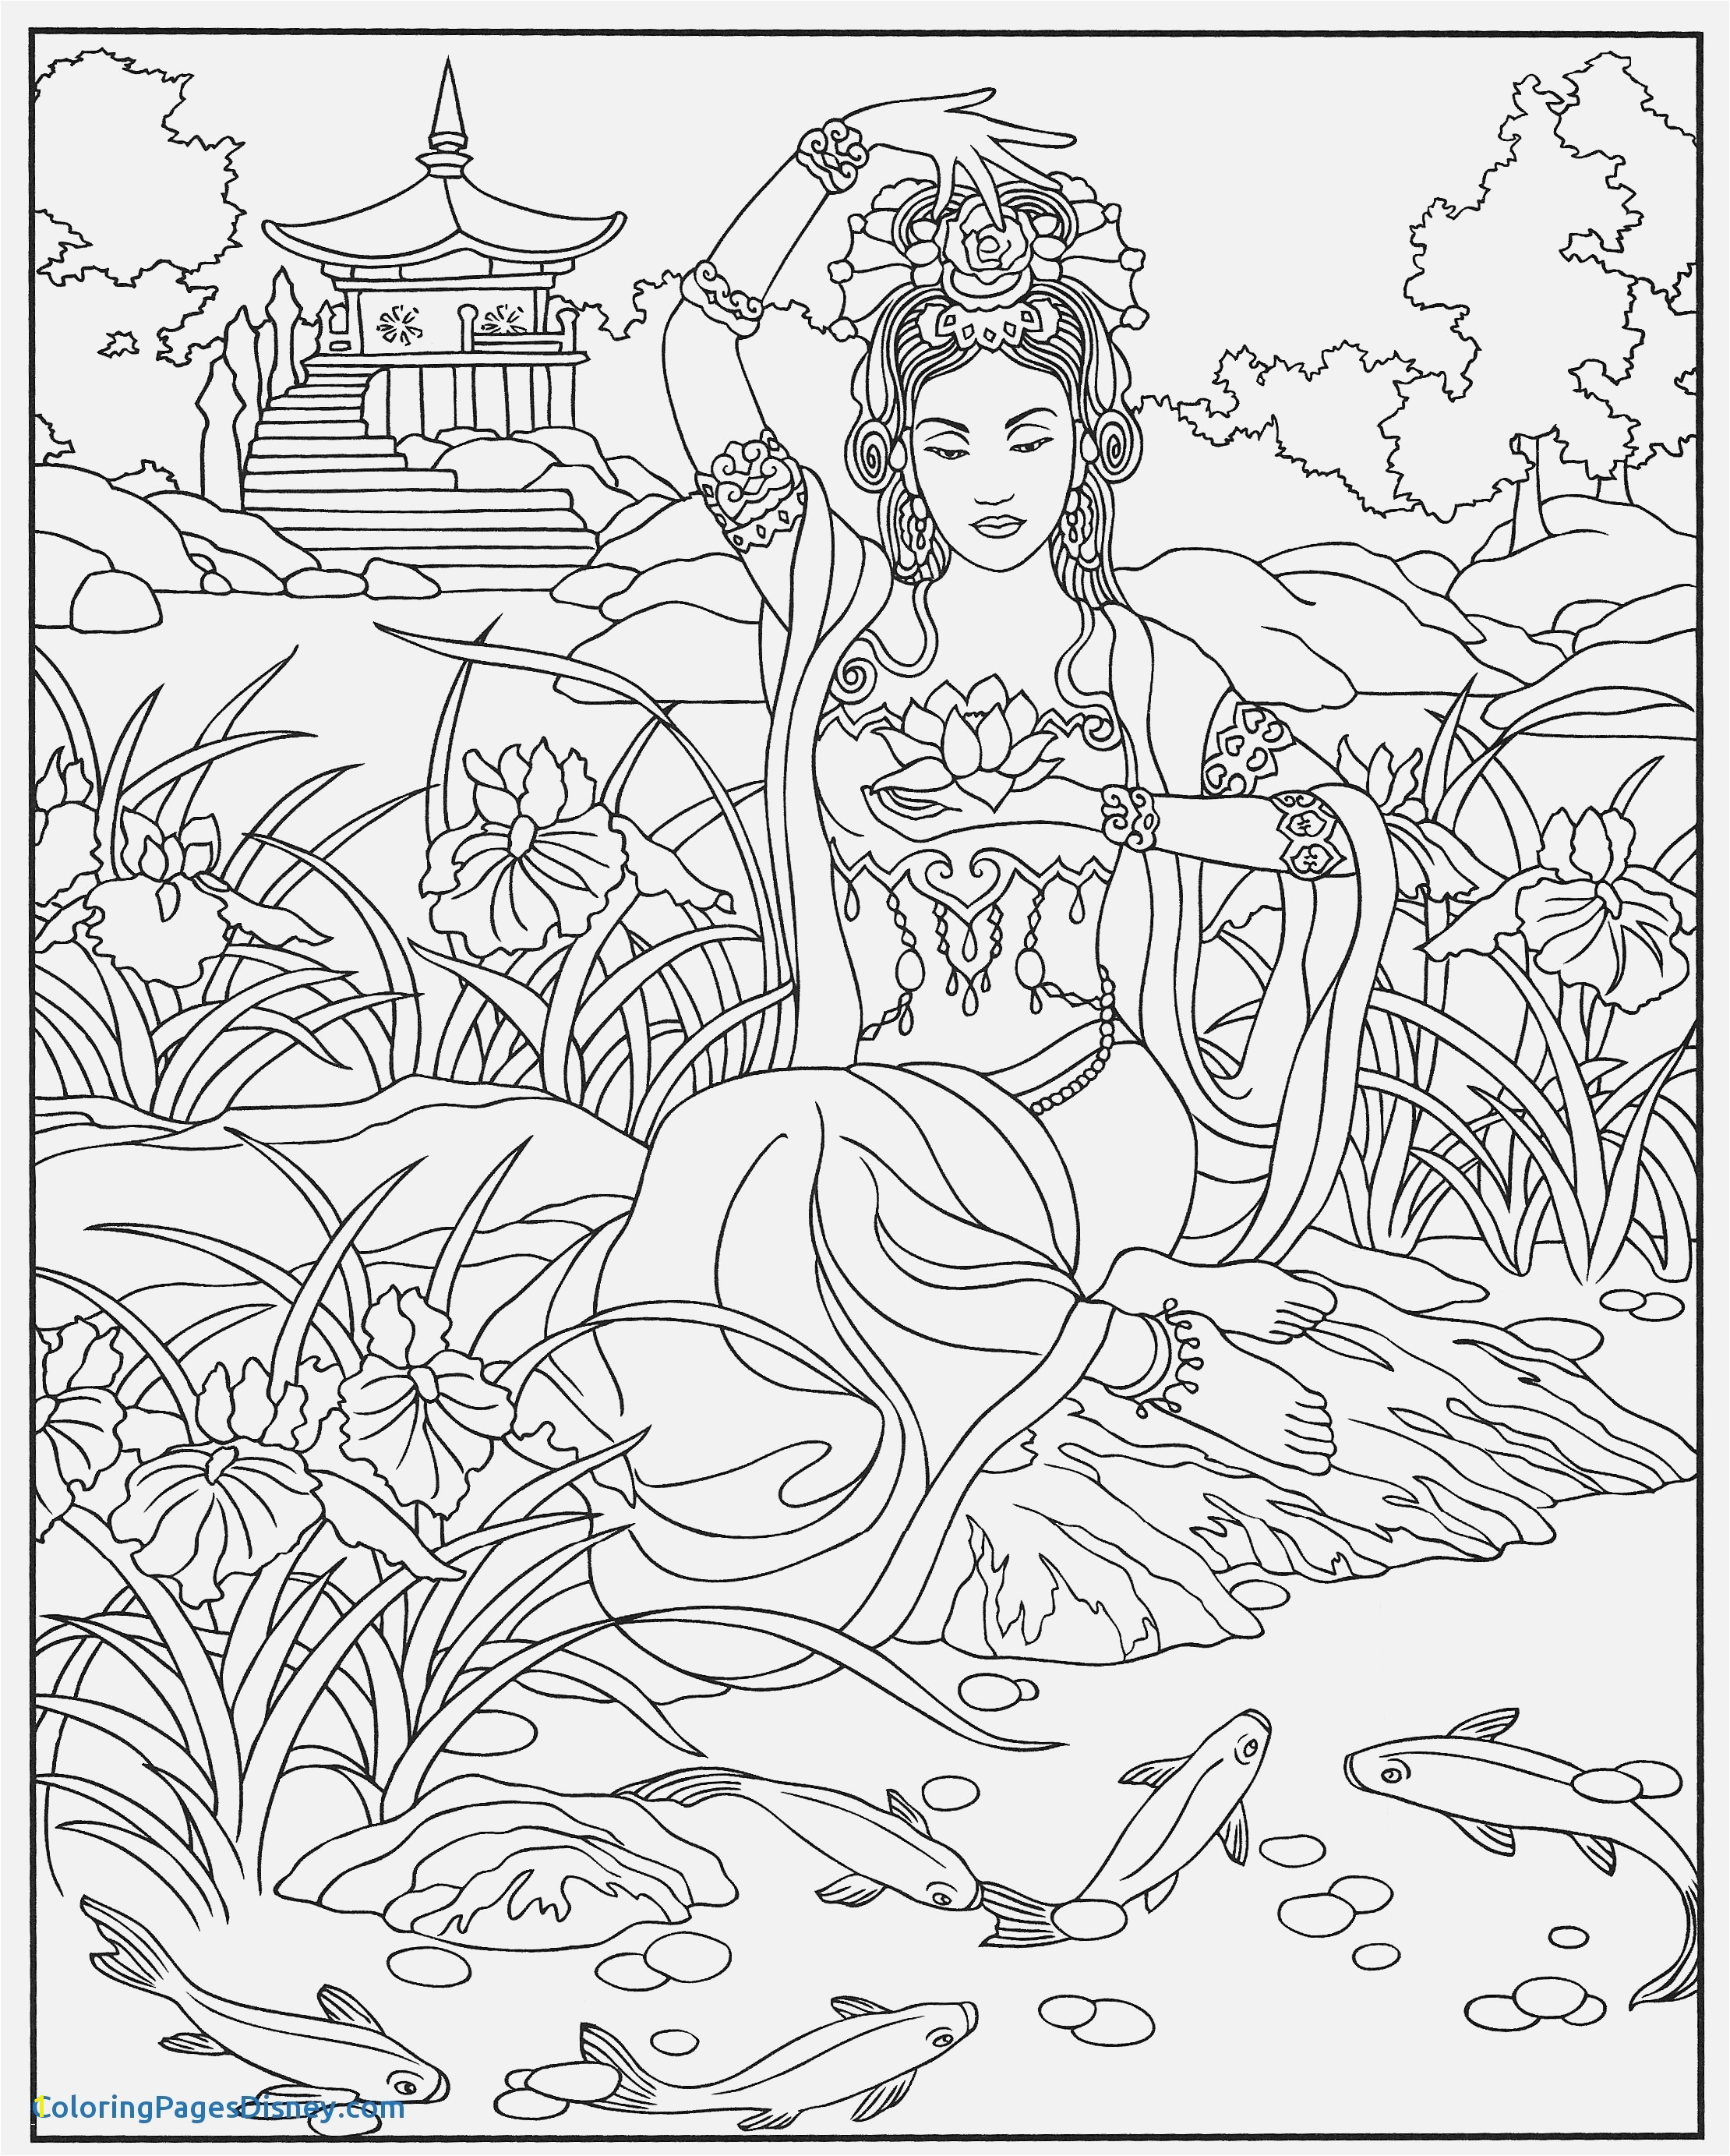 Belle Coloring Pages Easy and Fun Lion King Lion Unique Princess Coloring Pages Belle Printable